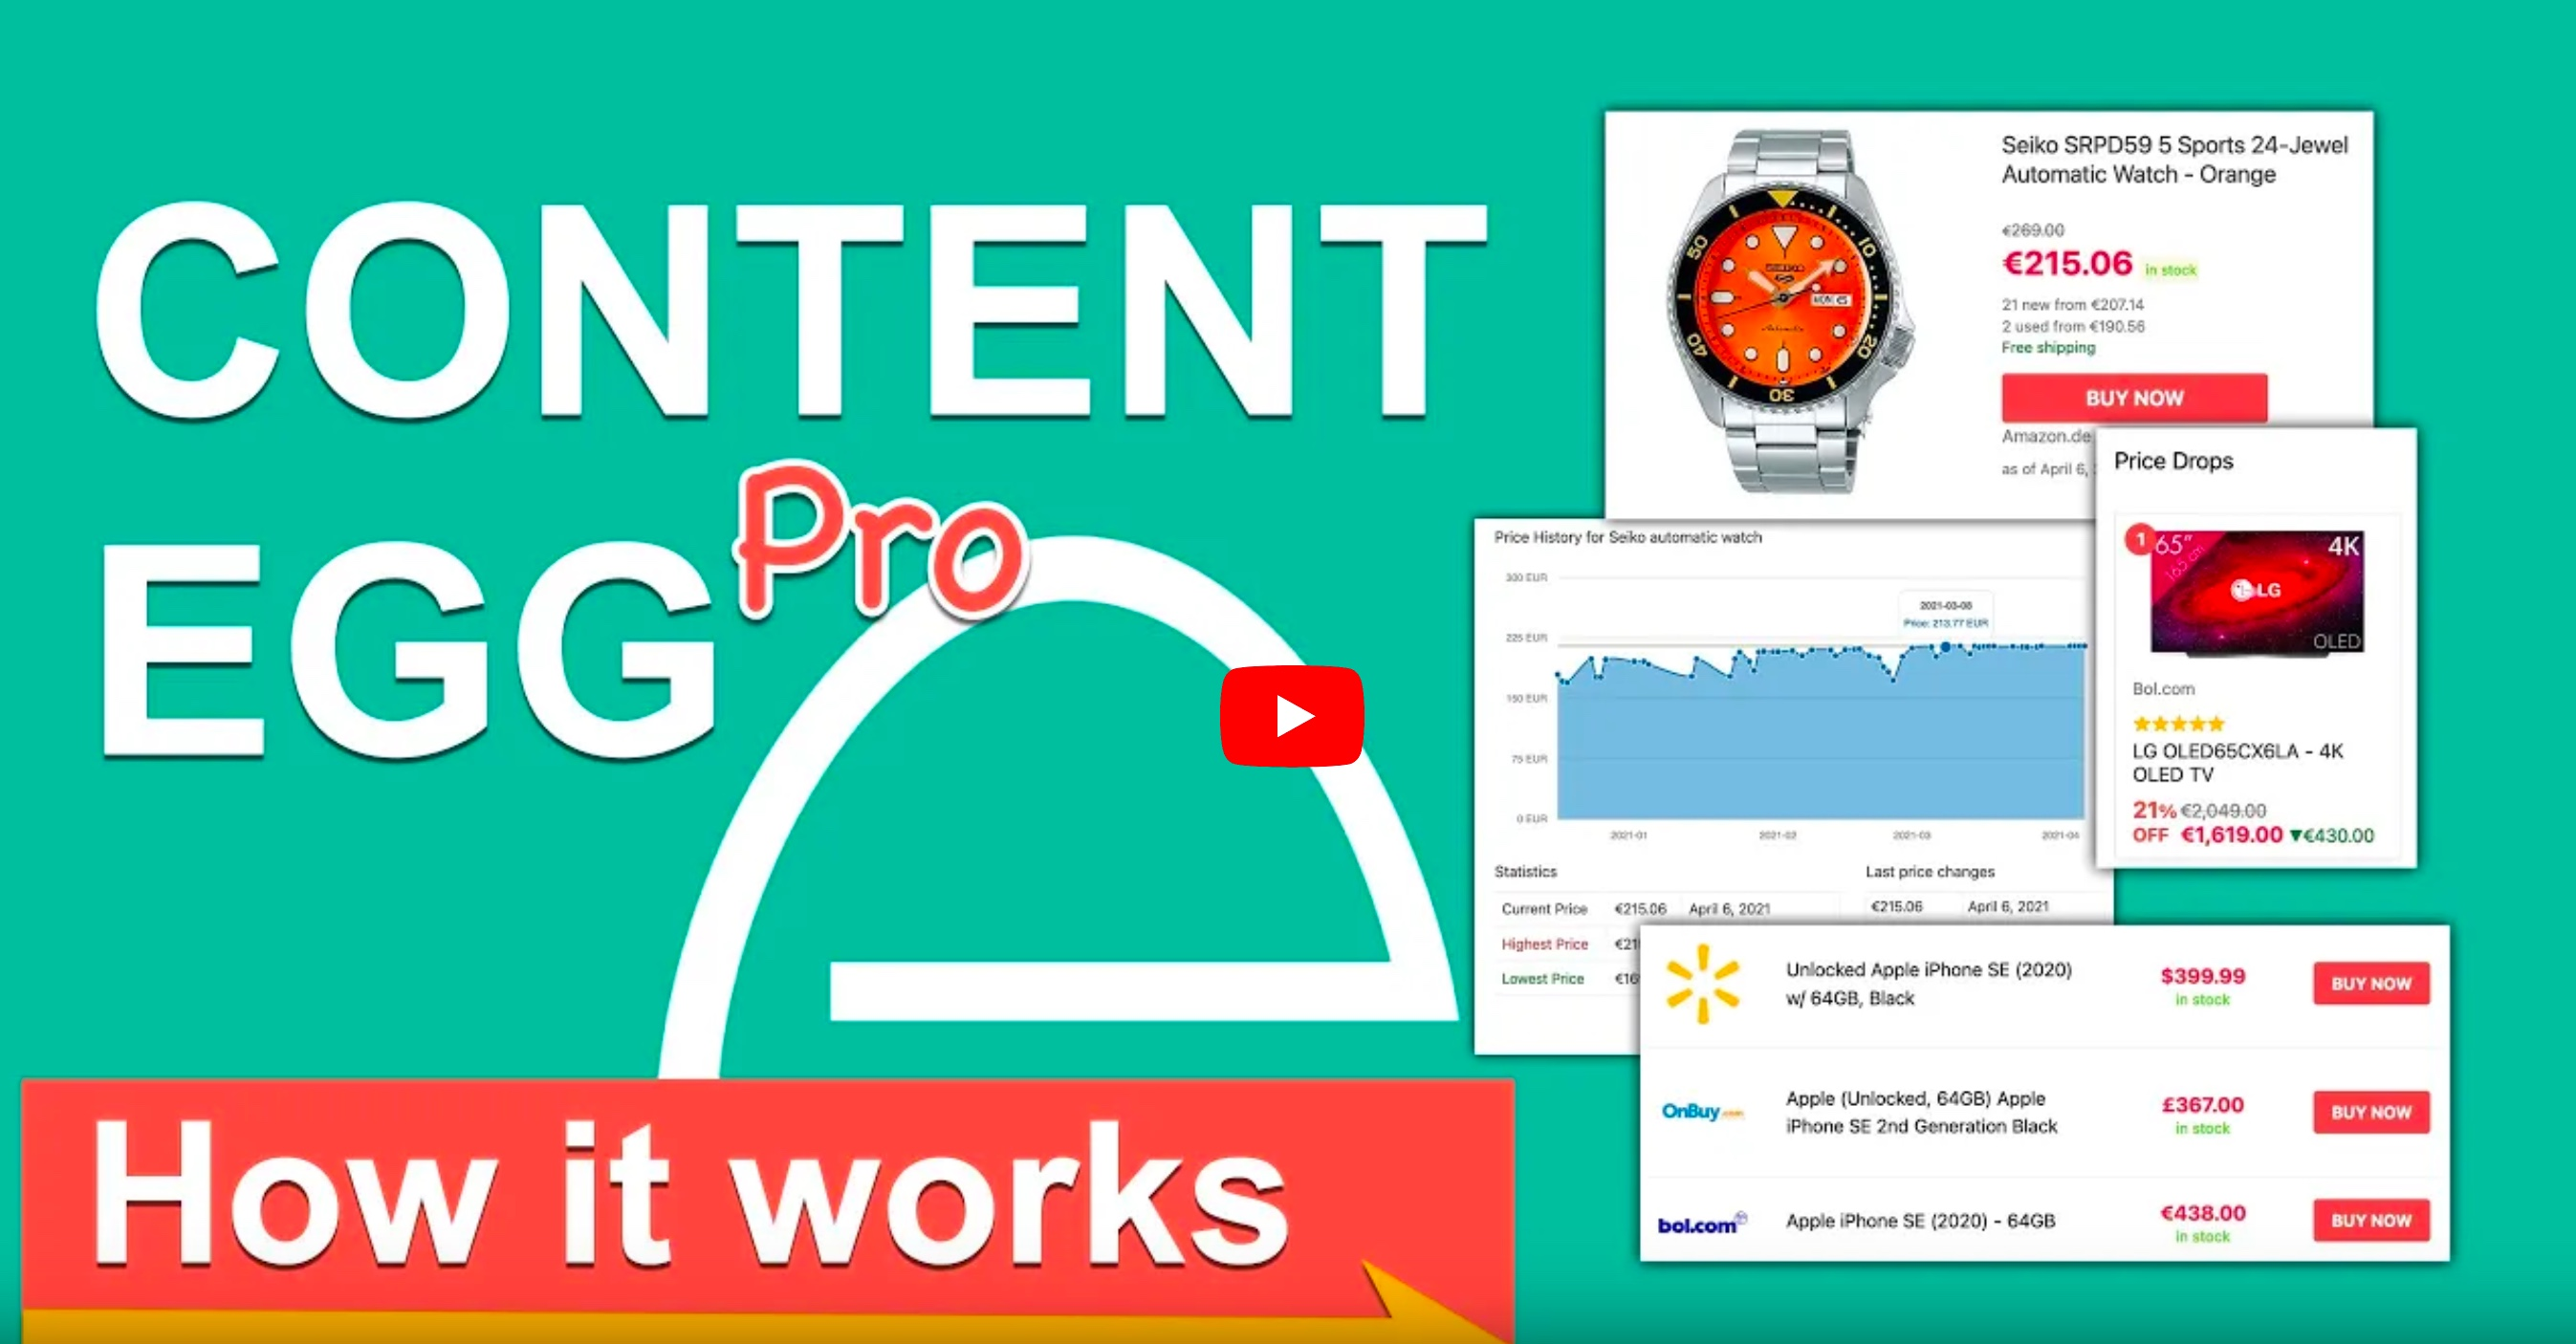 Content Egg - How it works